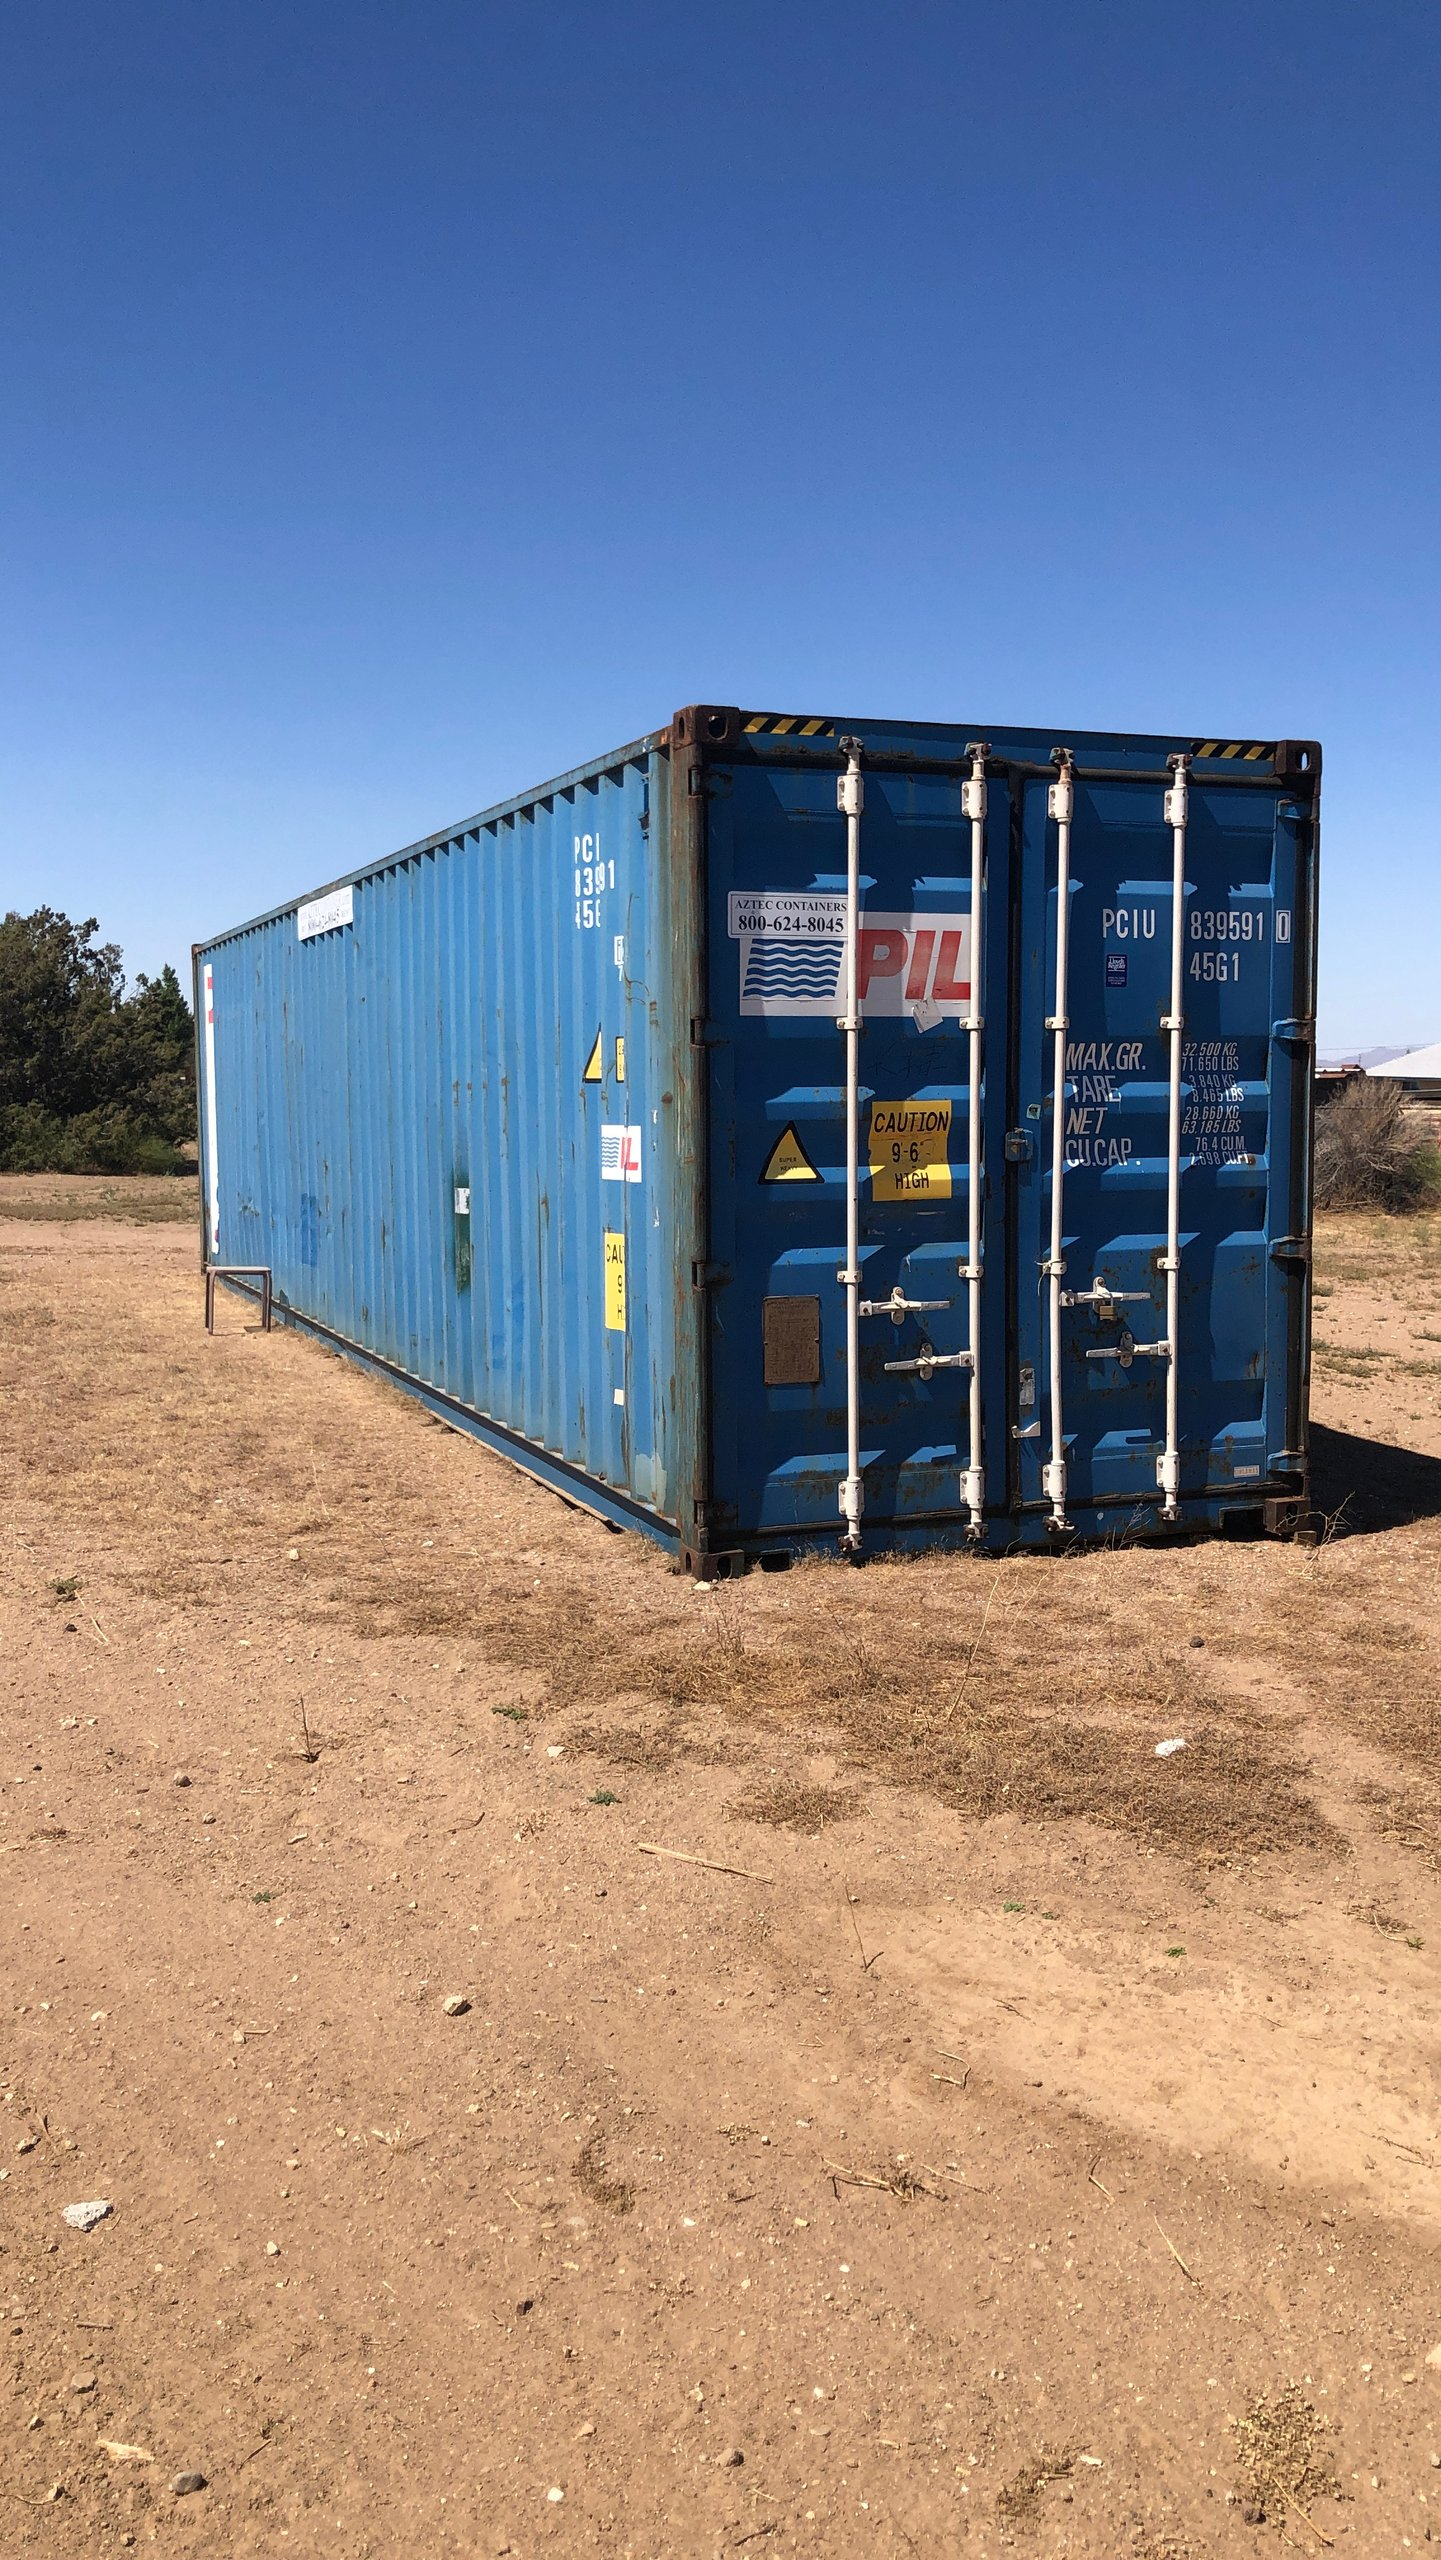 40x9 Shipping Container self storage unit